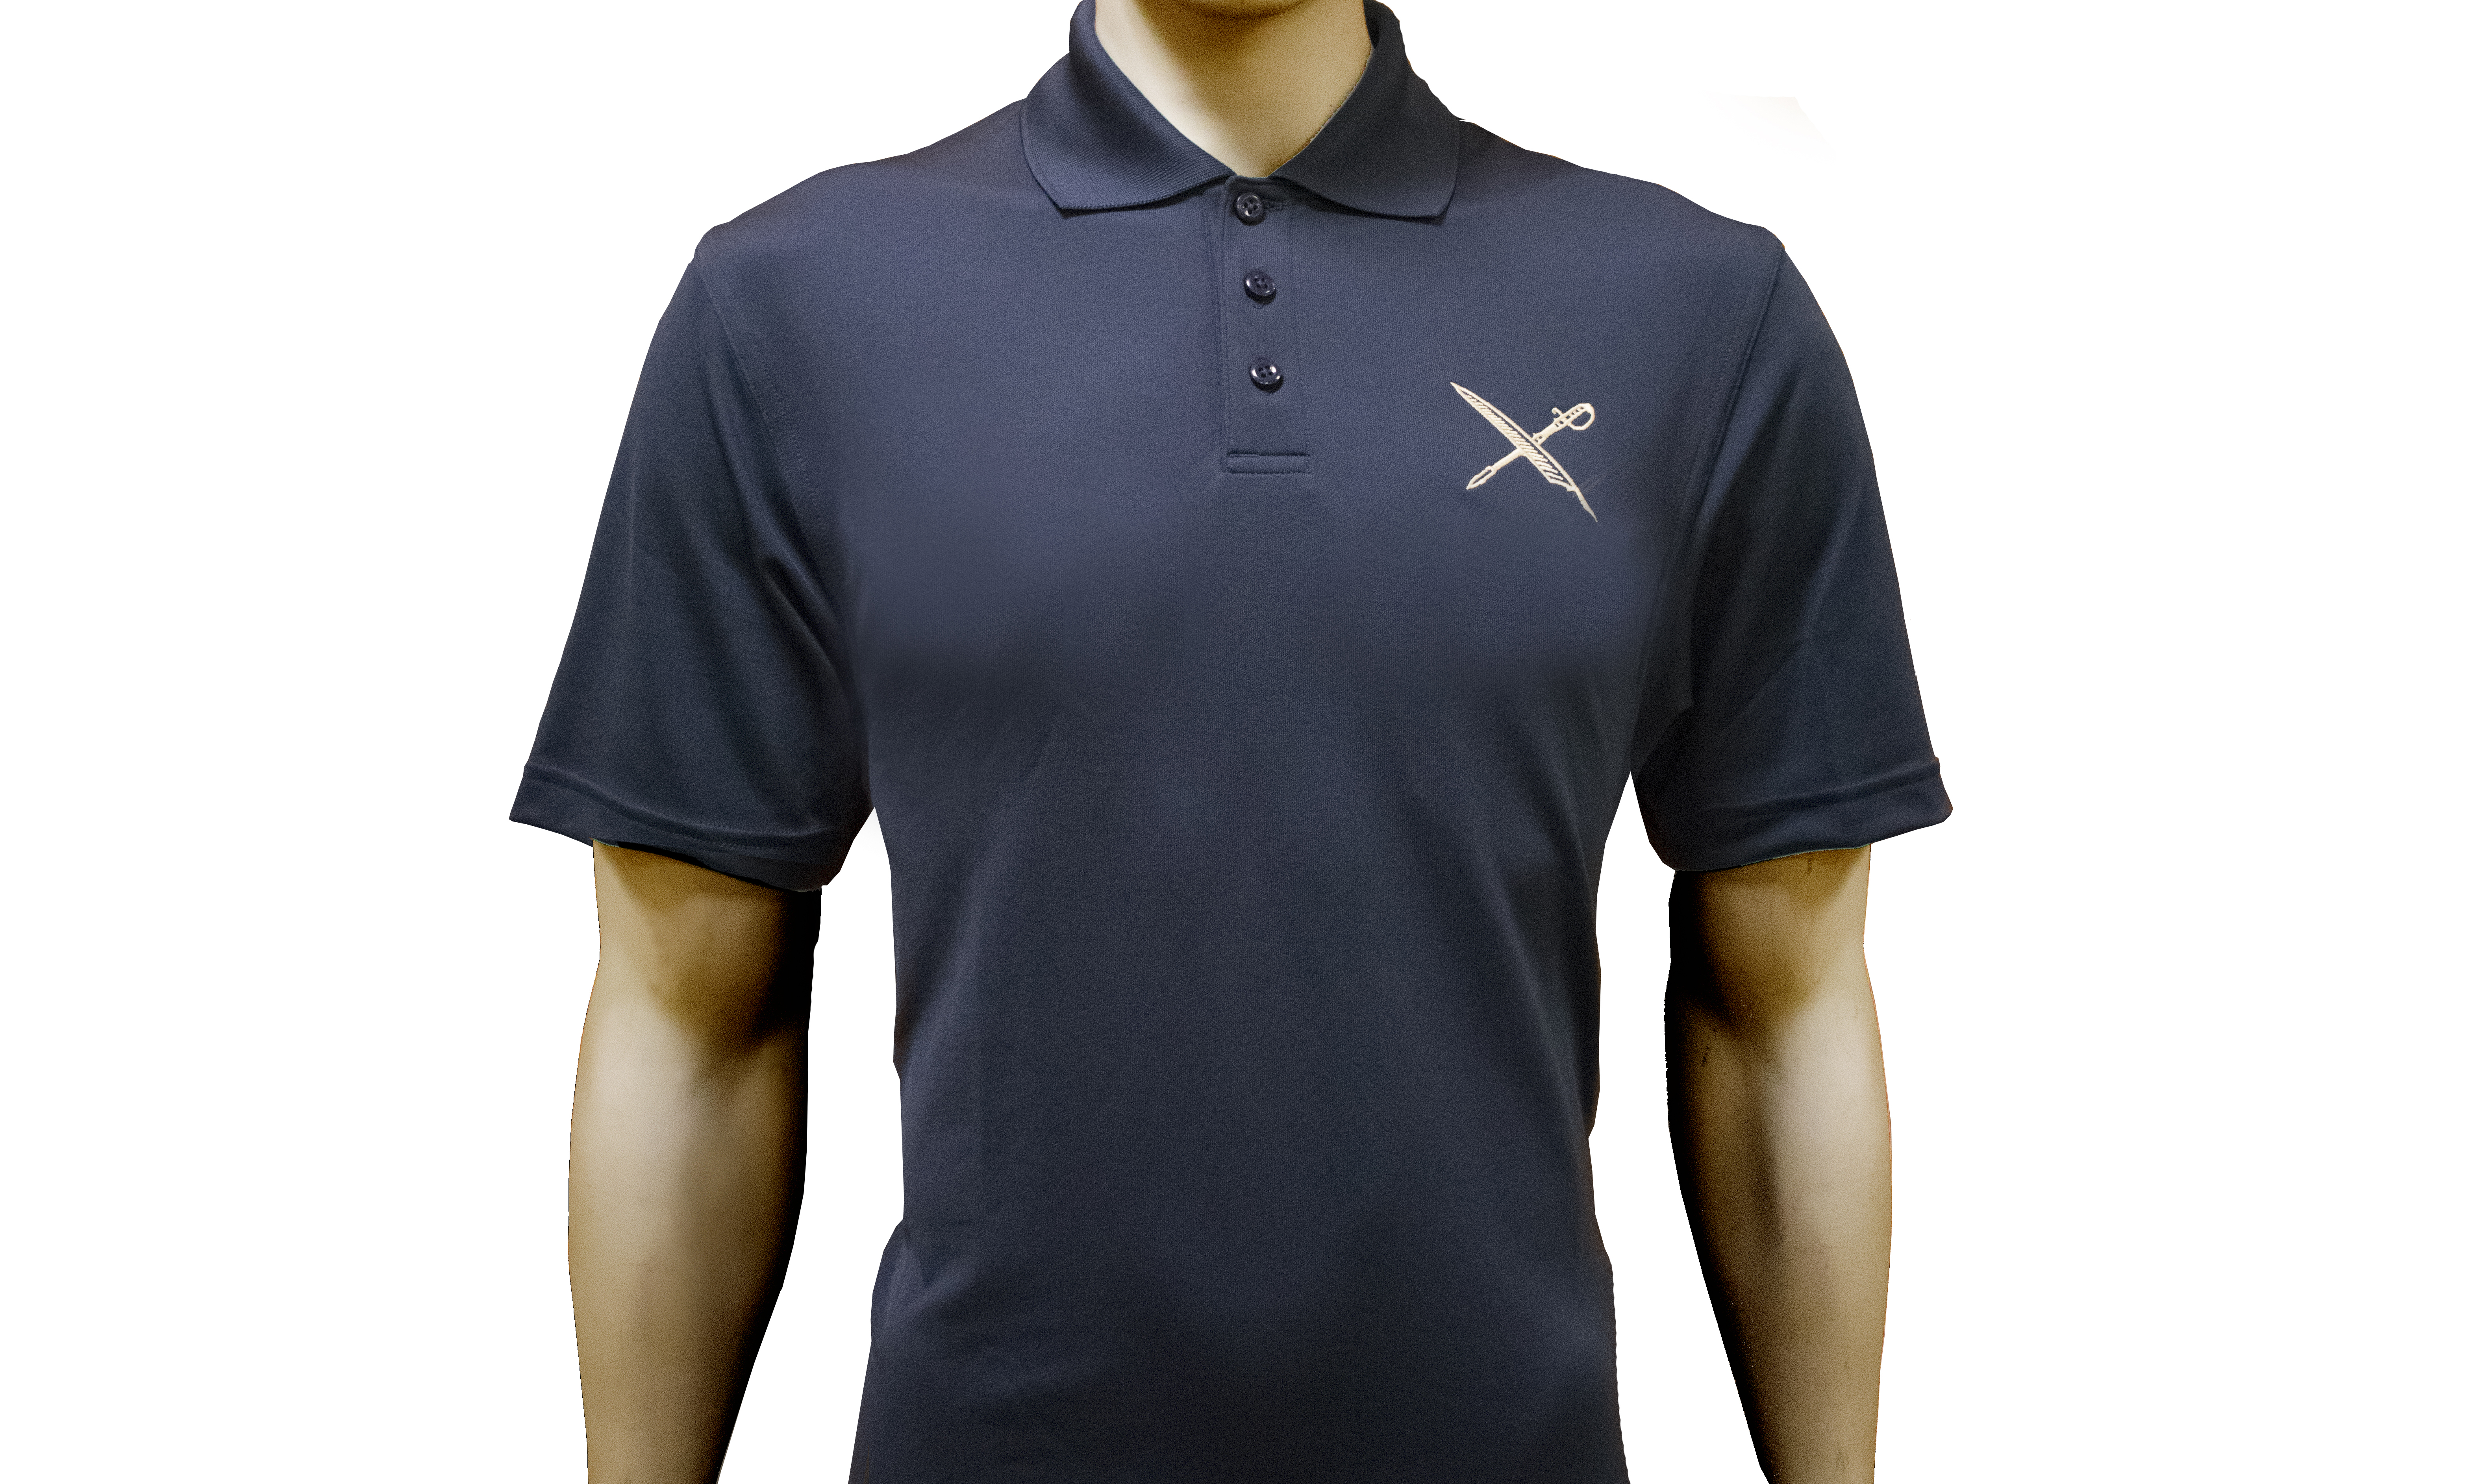 U.S. Naval Institute Men's Polo Shirt by Under Armour® Front View